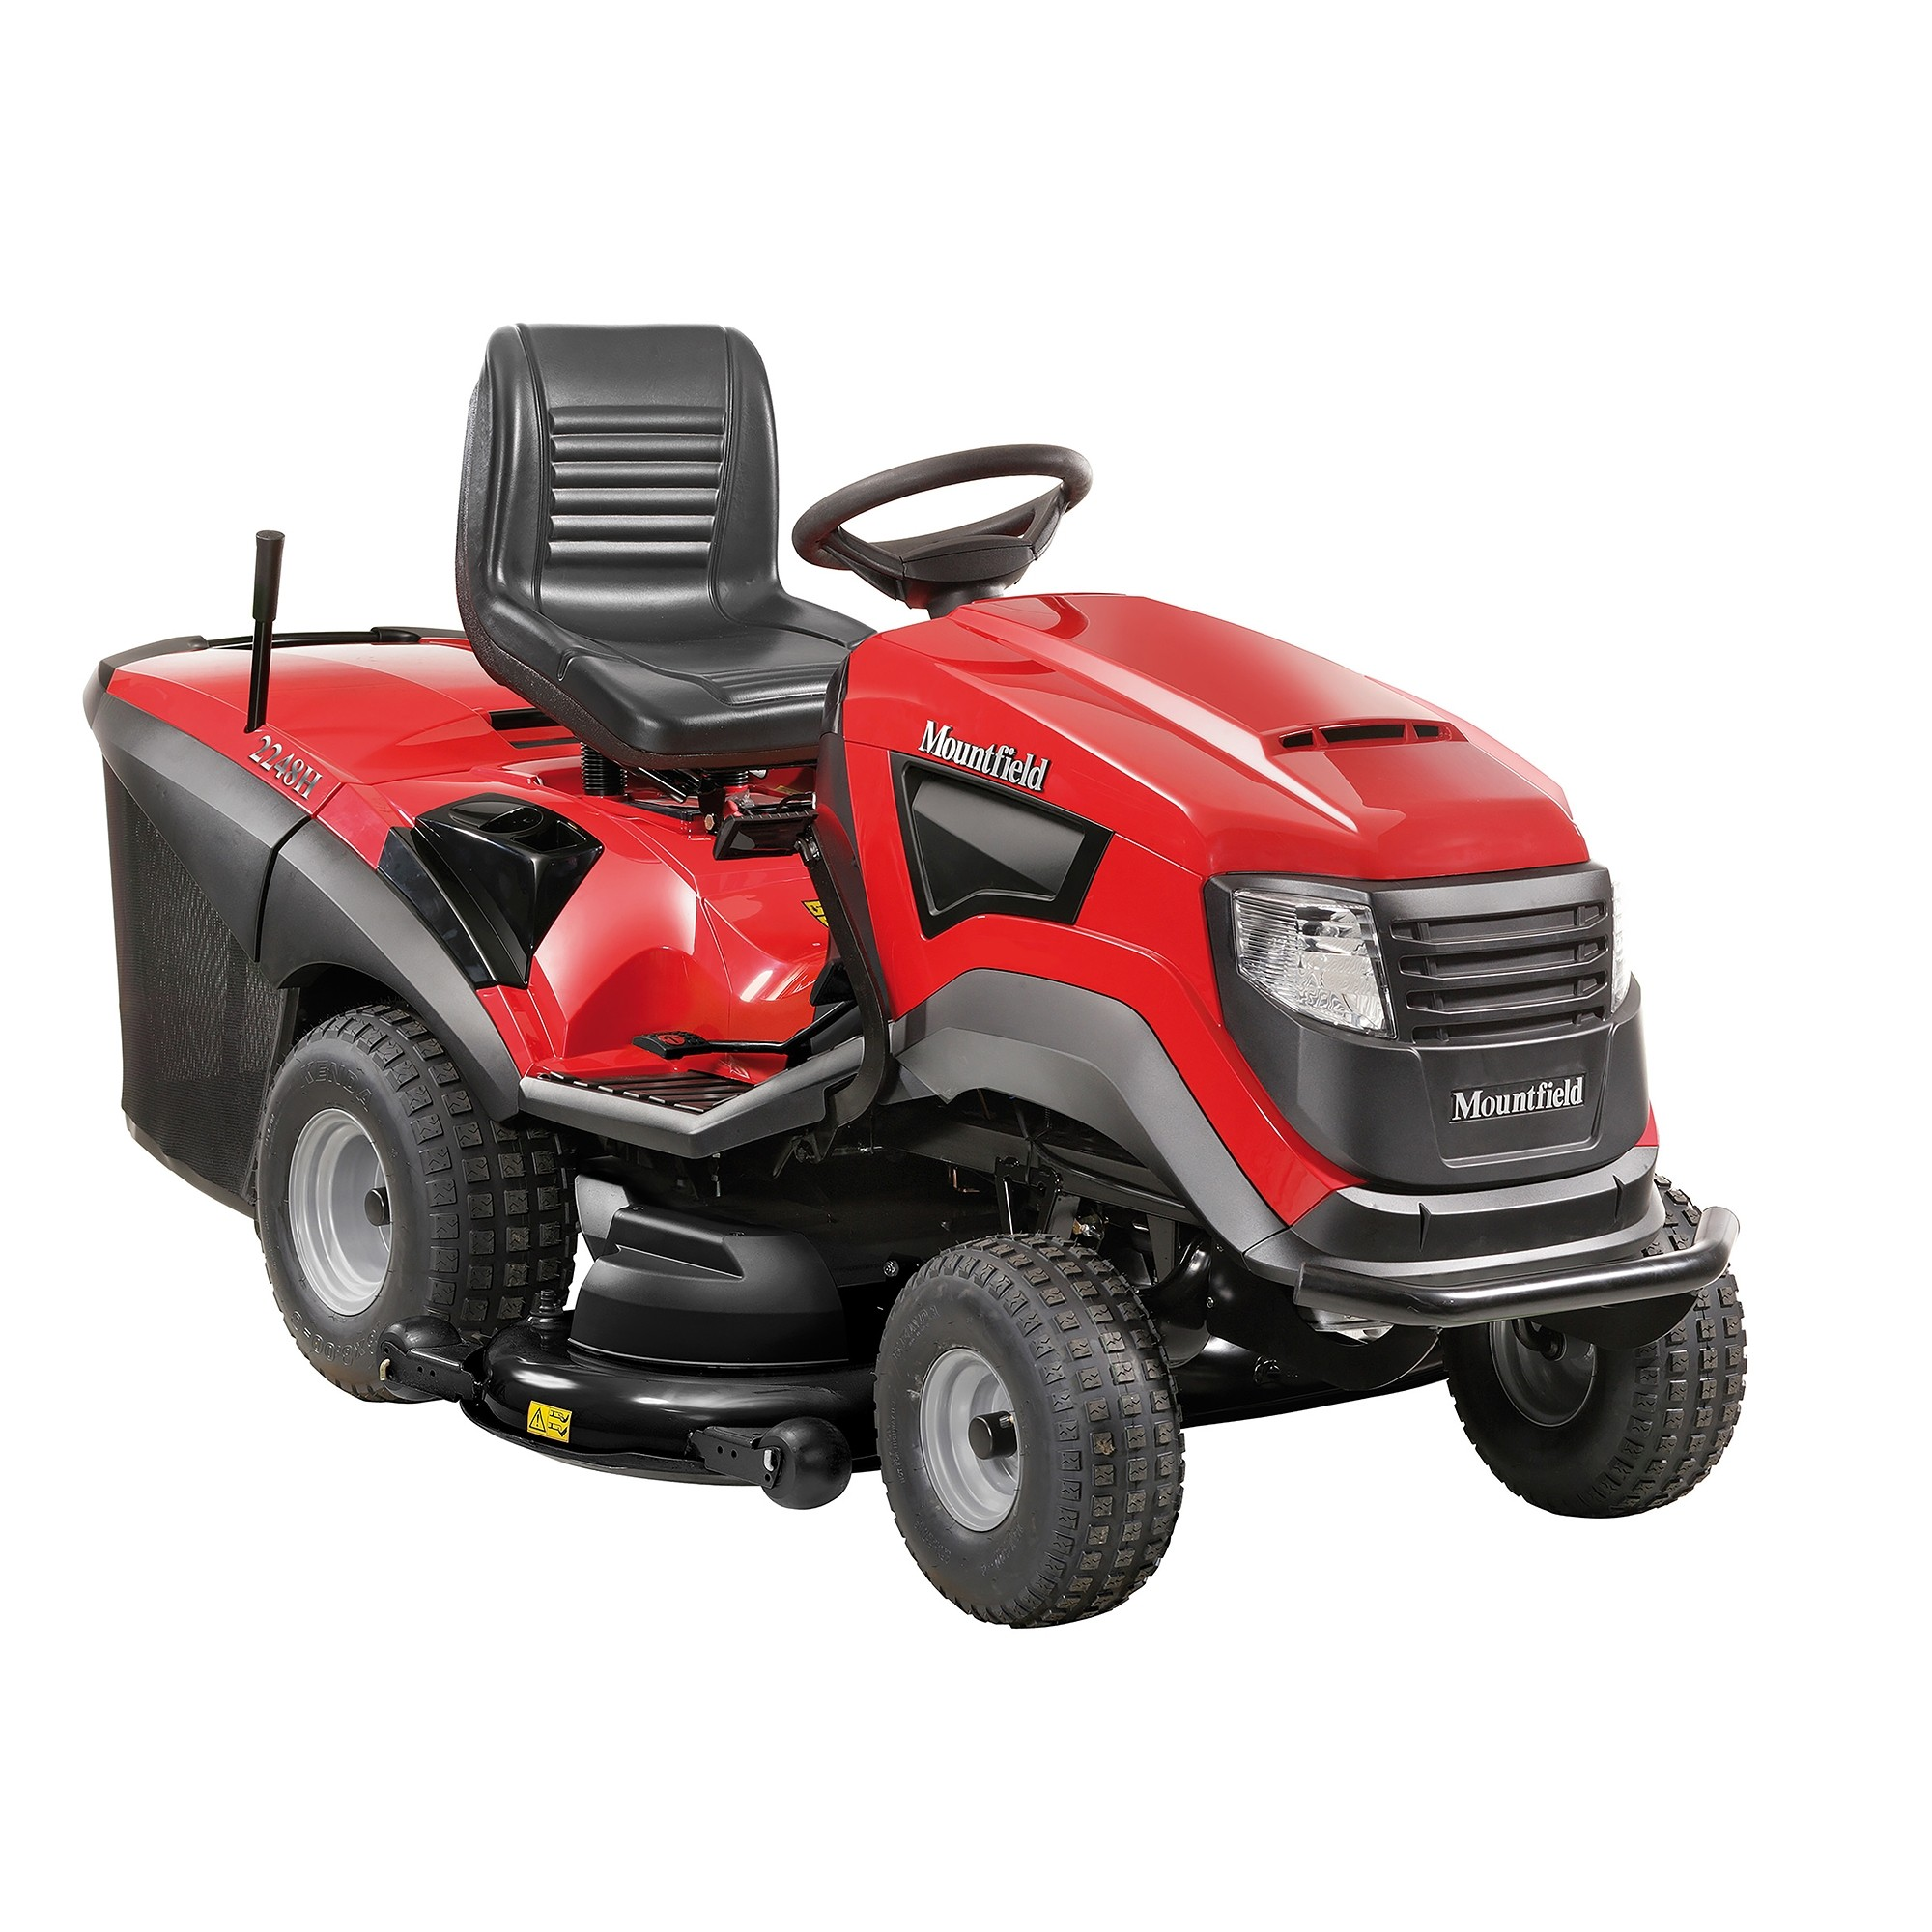 Mountfield 2248H Lawn Tractor